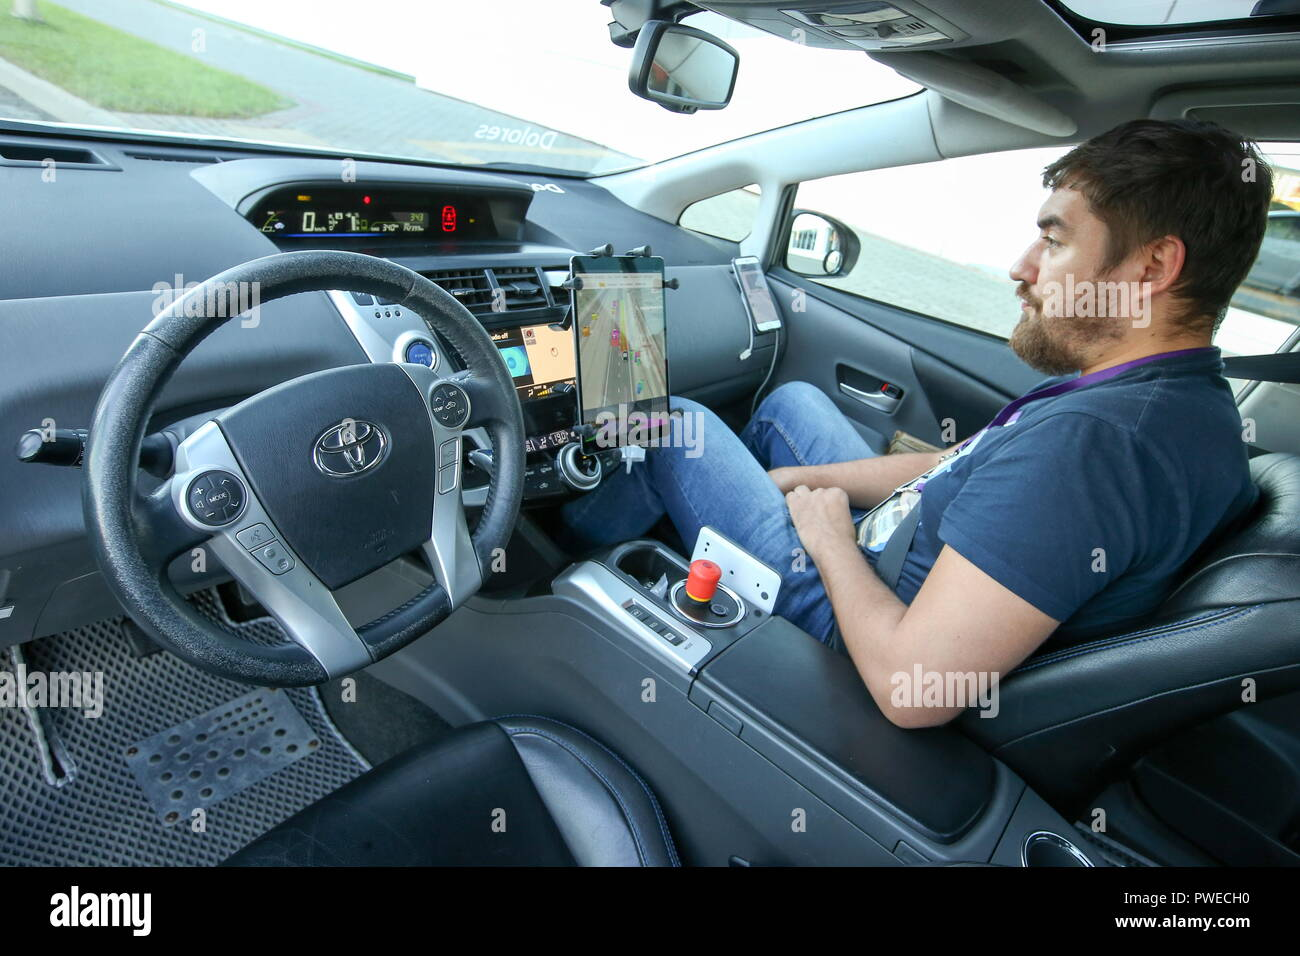 MOSCOW, RUSSIA – OCTOBER 16, 2018: A passenger inside a